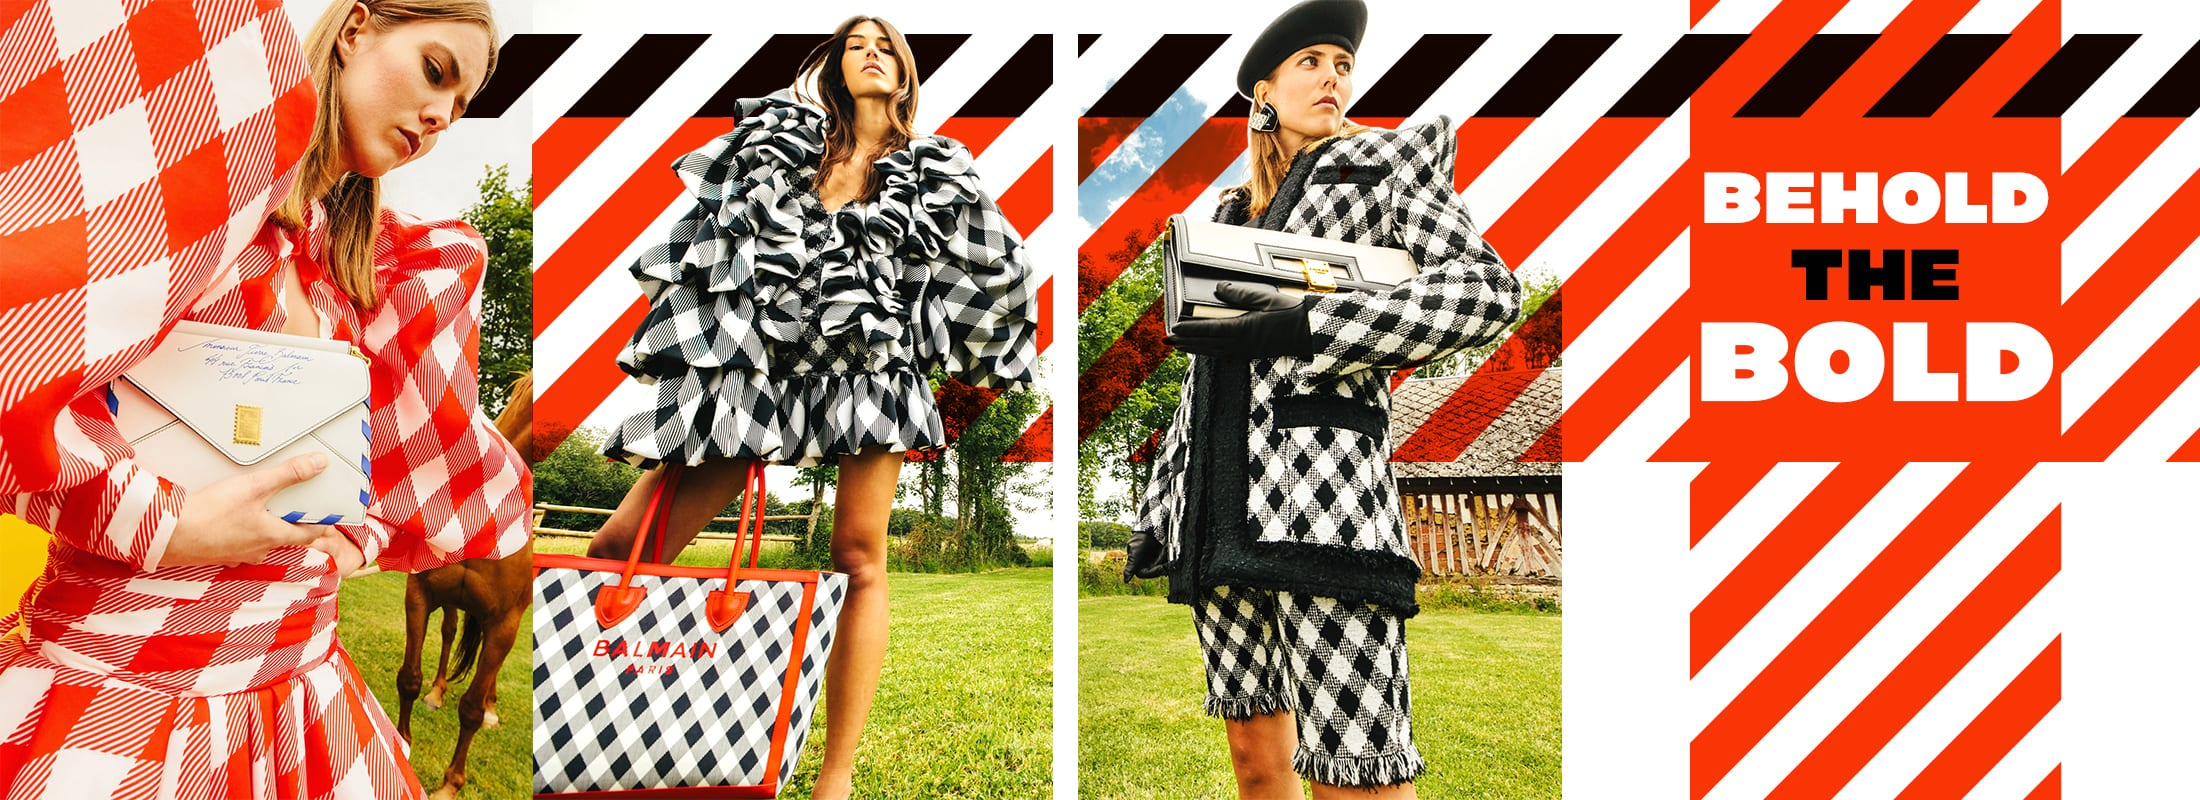 Bold 90's stripes and broad plaids in fashion design bring thematic options for fresh interiors.